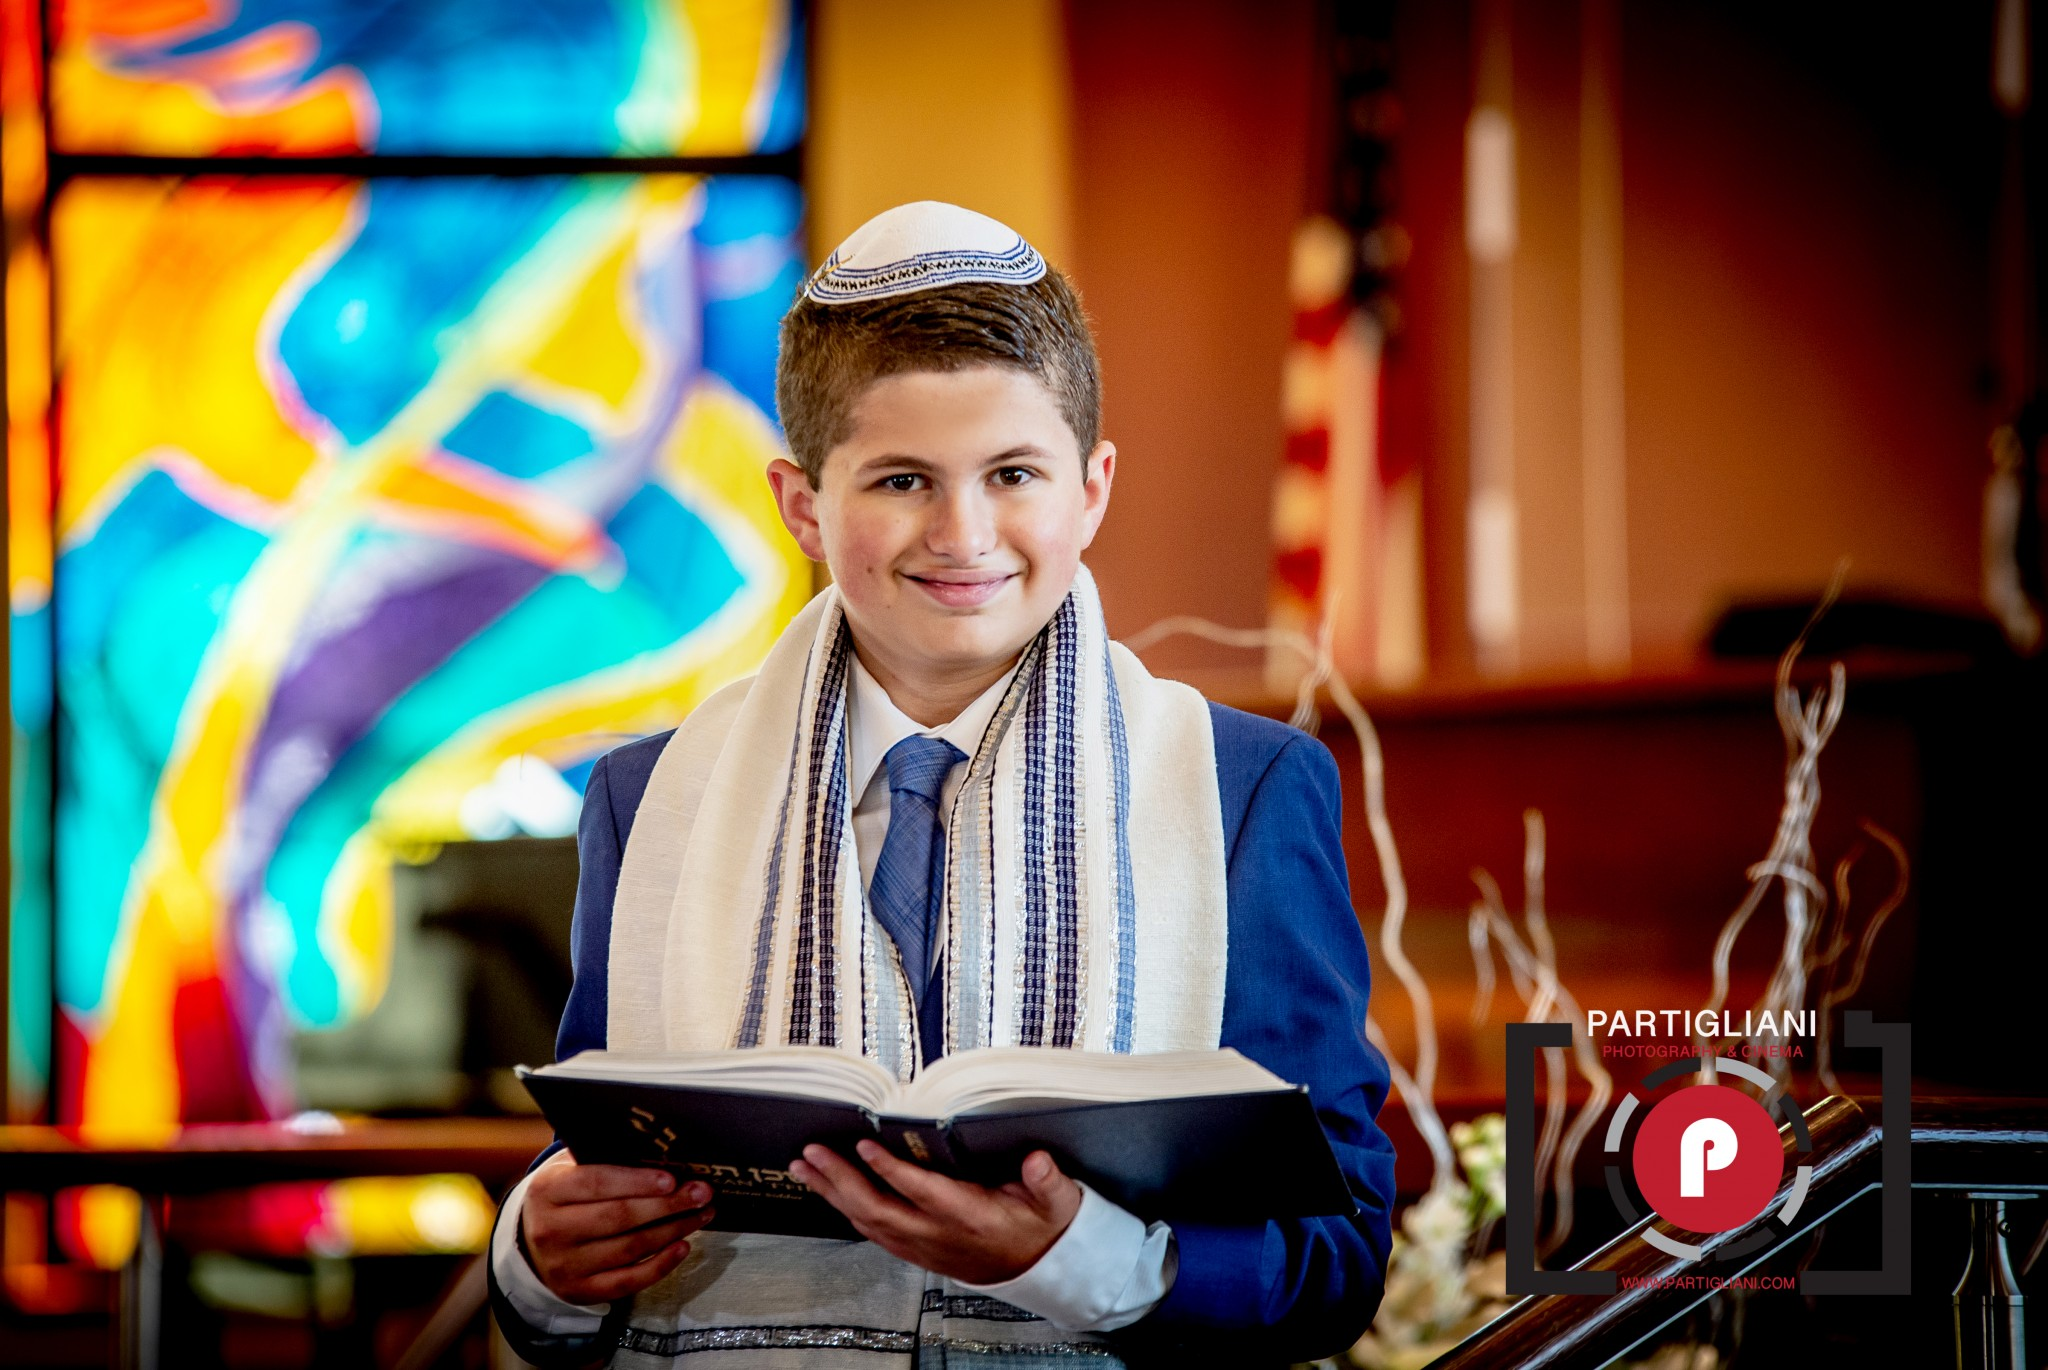 JADEN SHAPIRO BAR MITZVAH. KOL TIKVAH, DALSIMER ATLAS FLORAR AND EVENT DECORATOR, CAROLY'S CREATIONZ